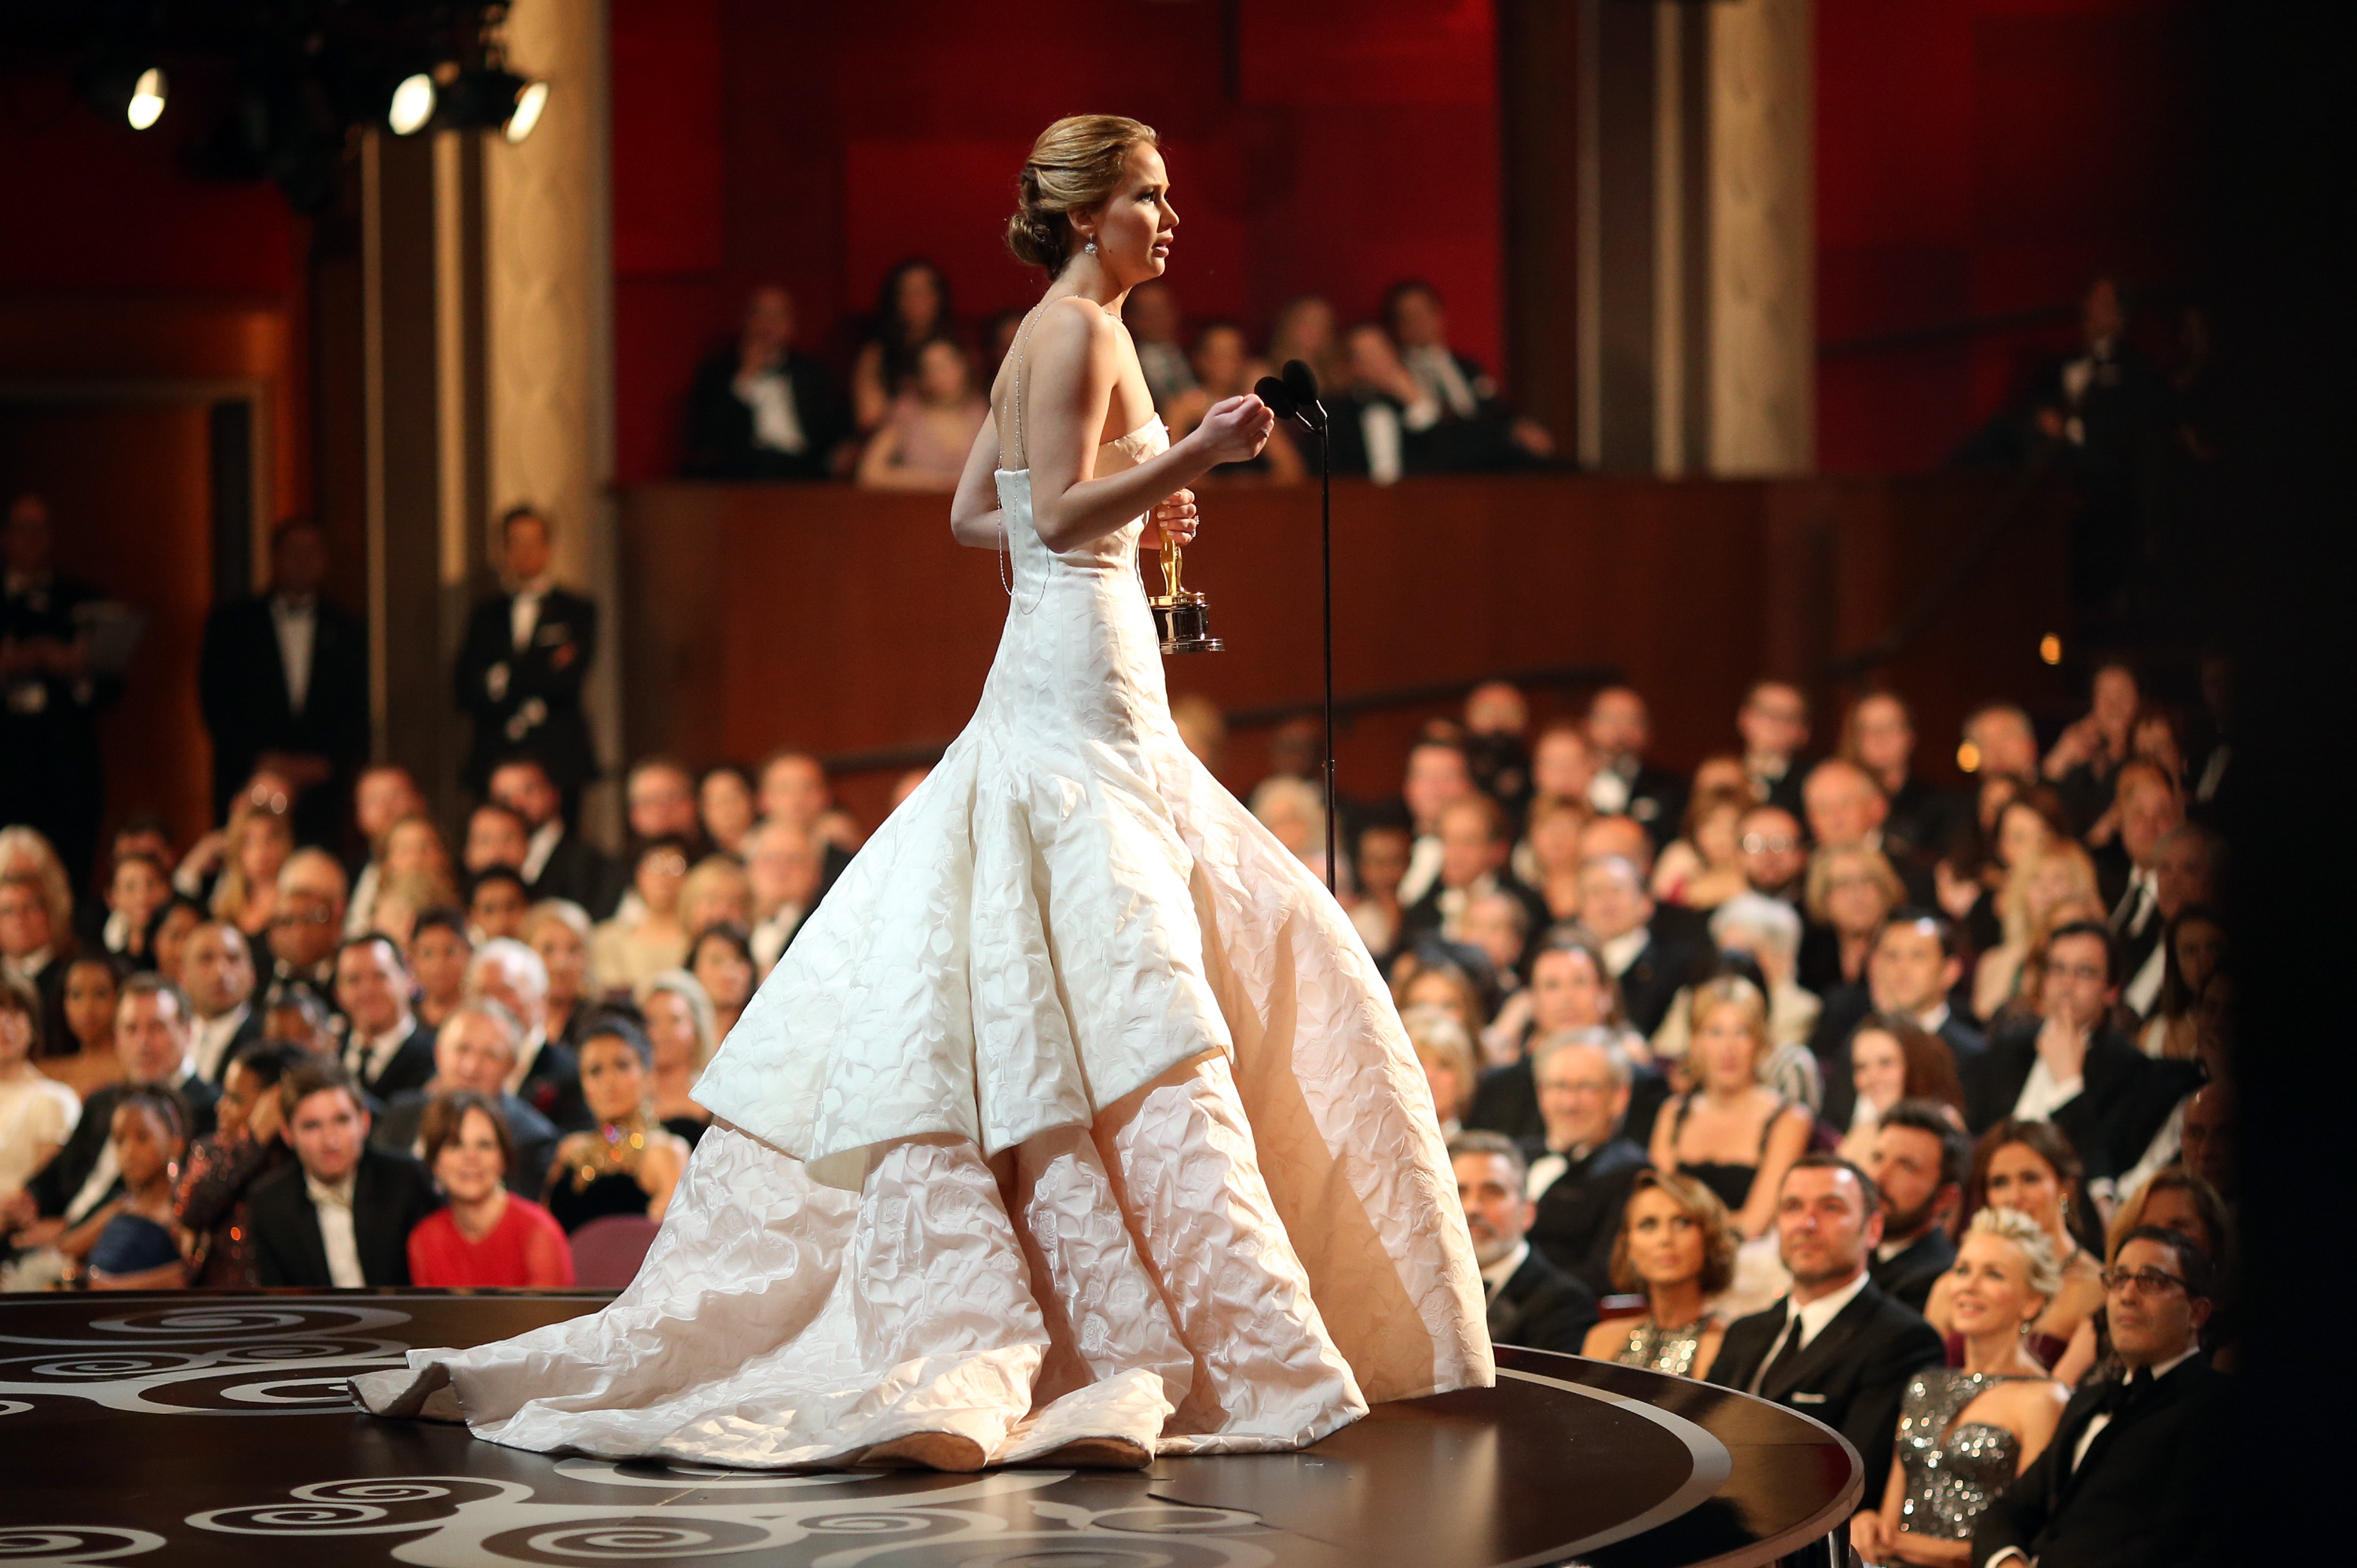 Jennifer Lawrence accepted her award at the 2013 Oscars.